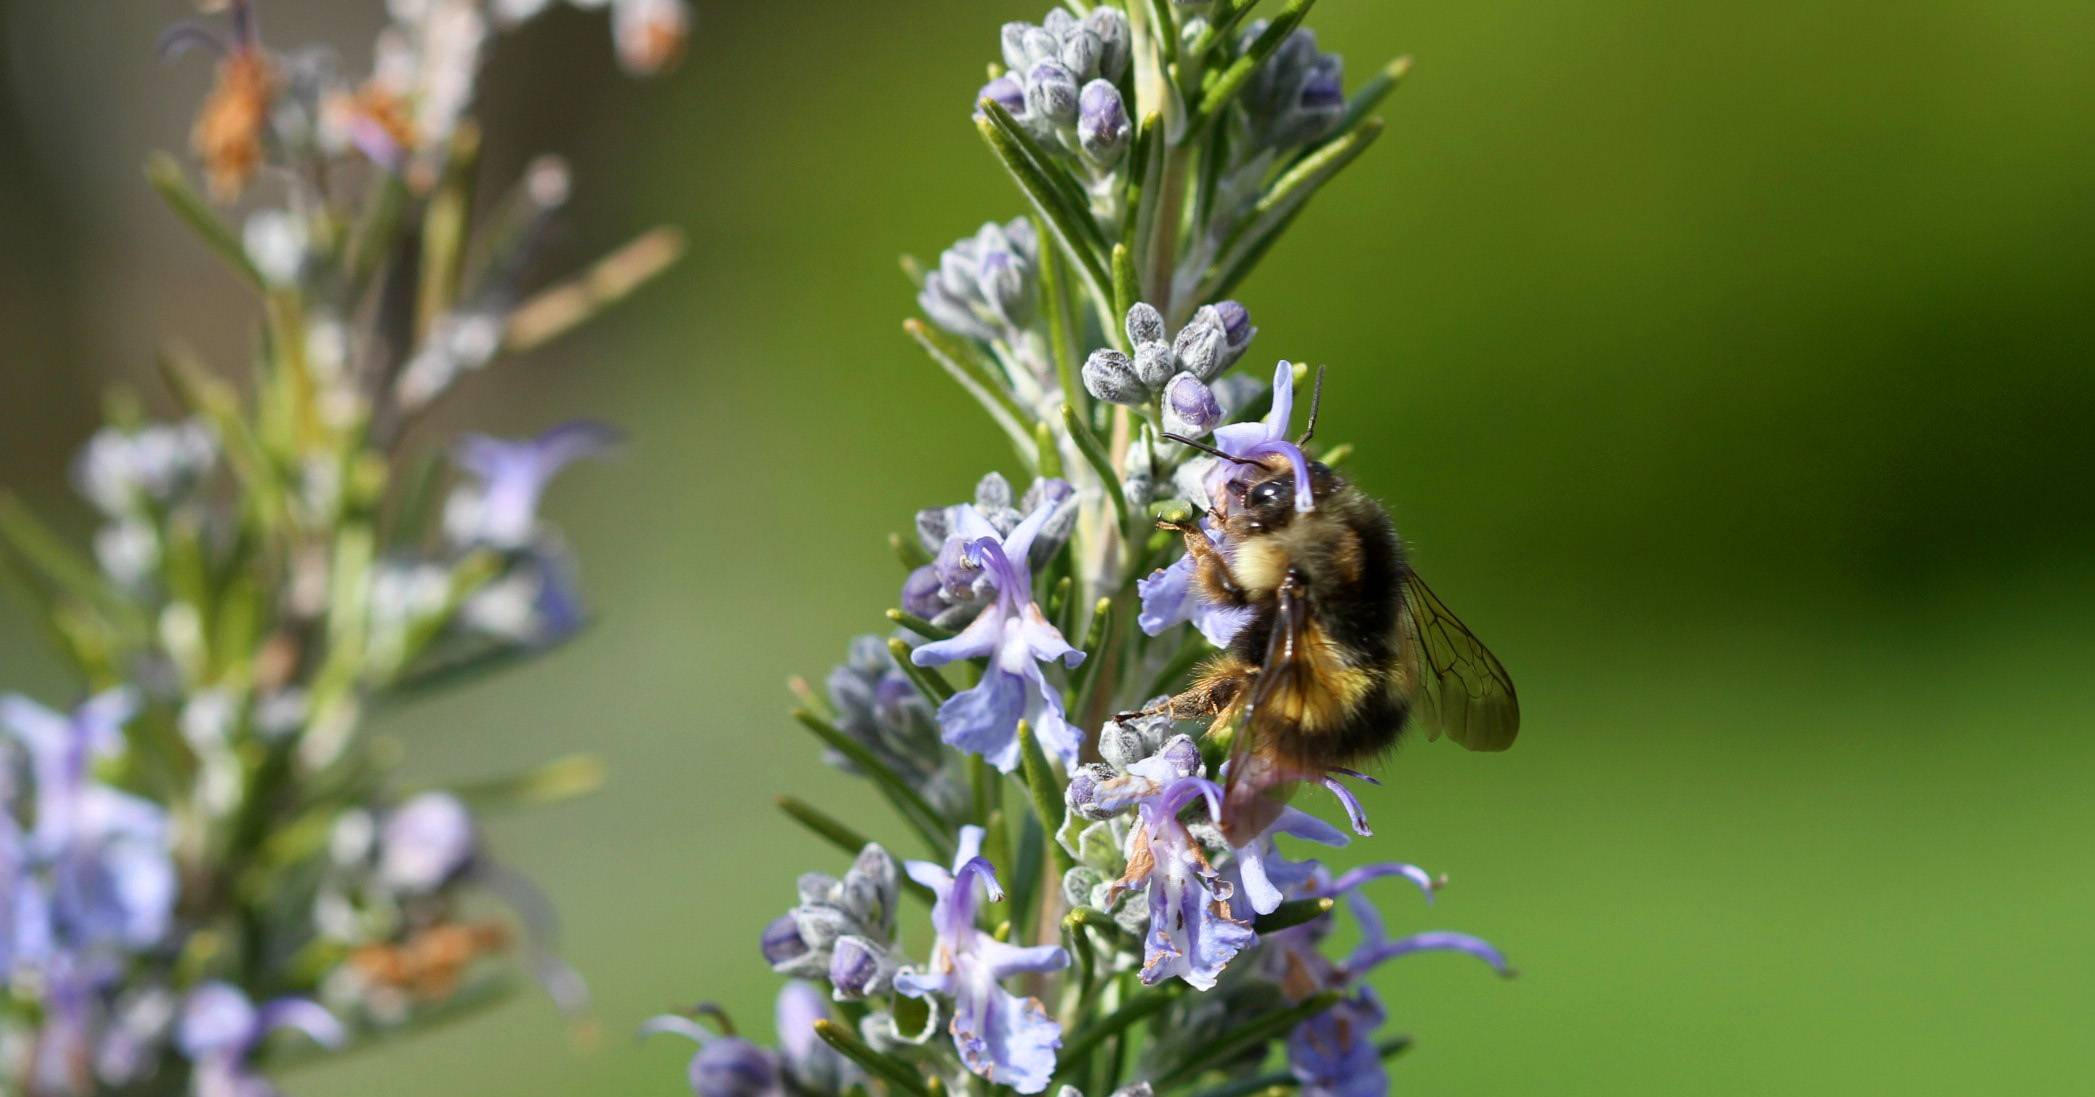 Honeybees are irreplaceable as pollinators, but you can somewhat offset their loss by attracting beetles, butterflies and moths, dragonflies, feral bees, bumblebees and wasps, among others.